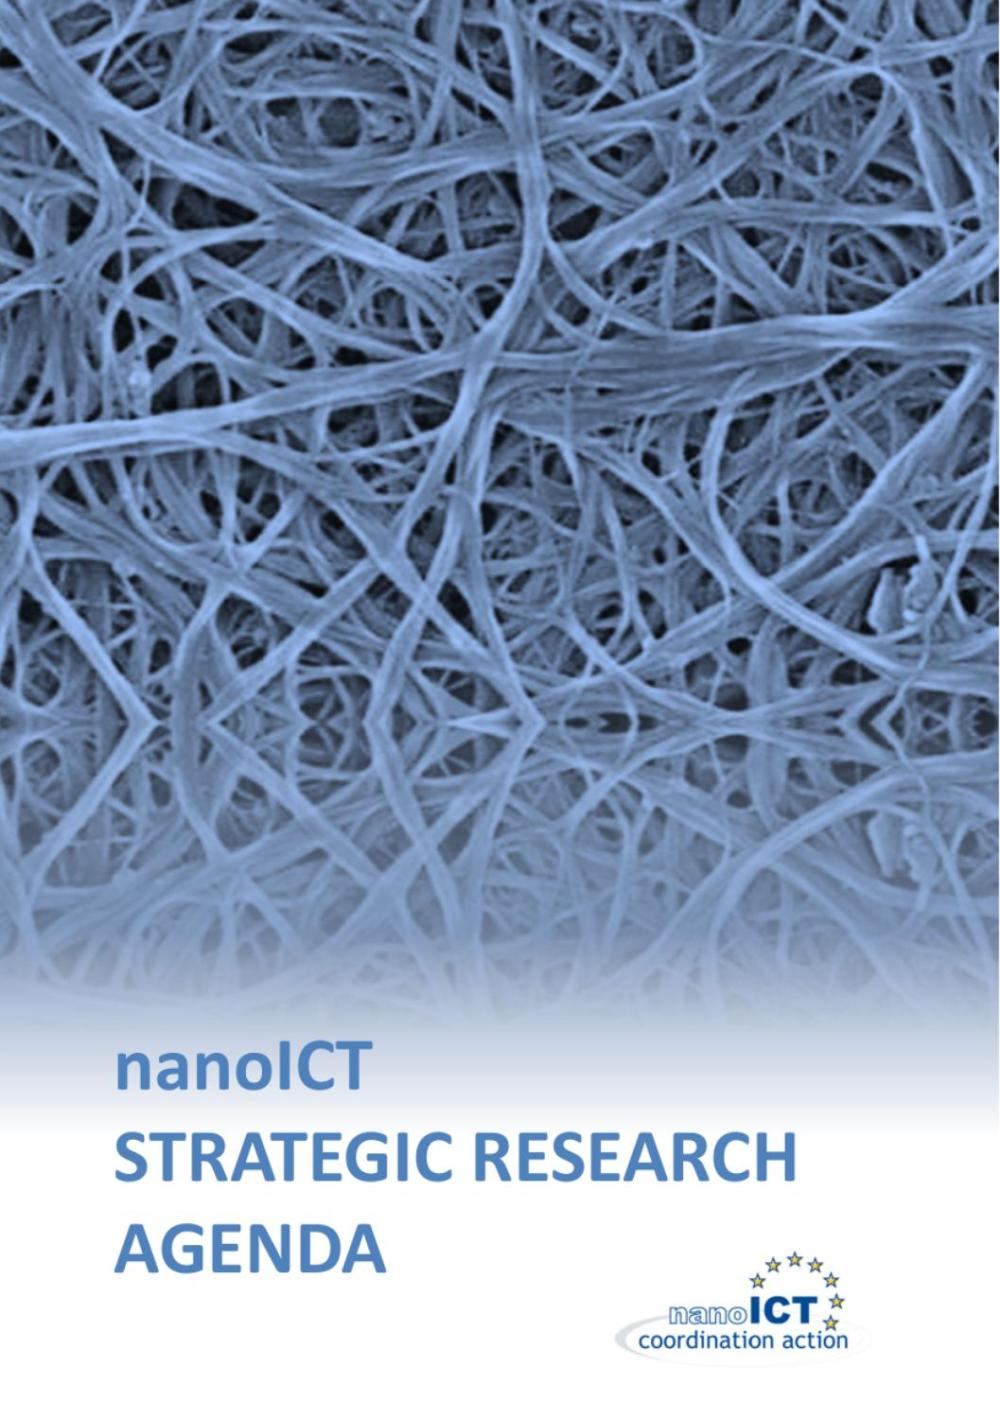 medium resolution of nanoict strategic research agenda version 2 0 by phantoms foundation issuu